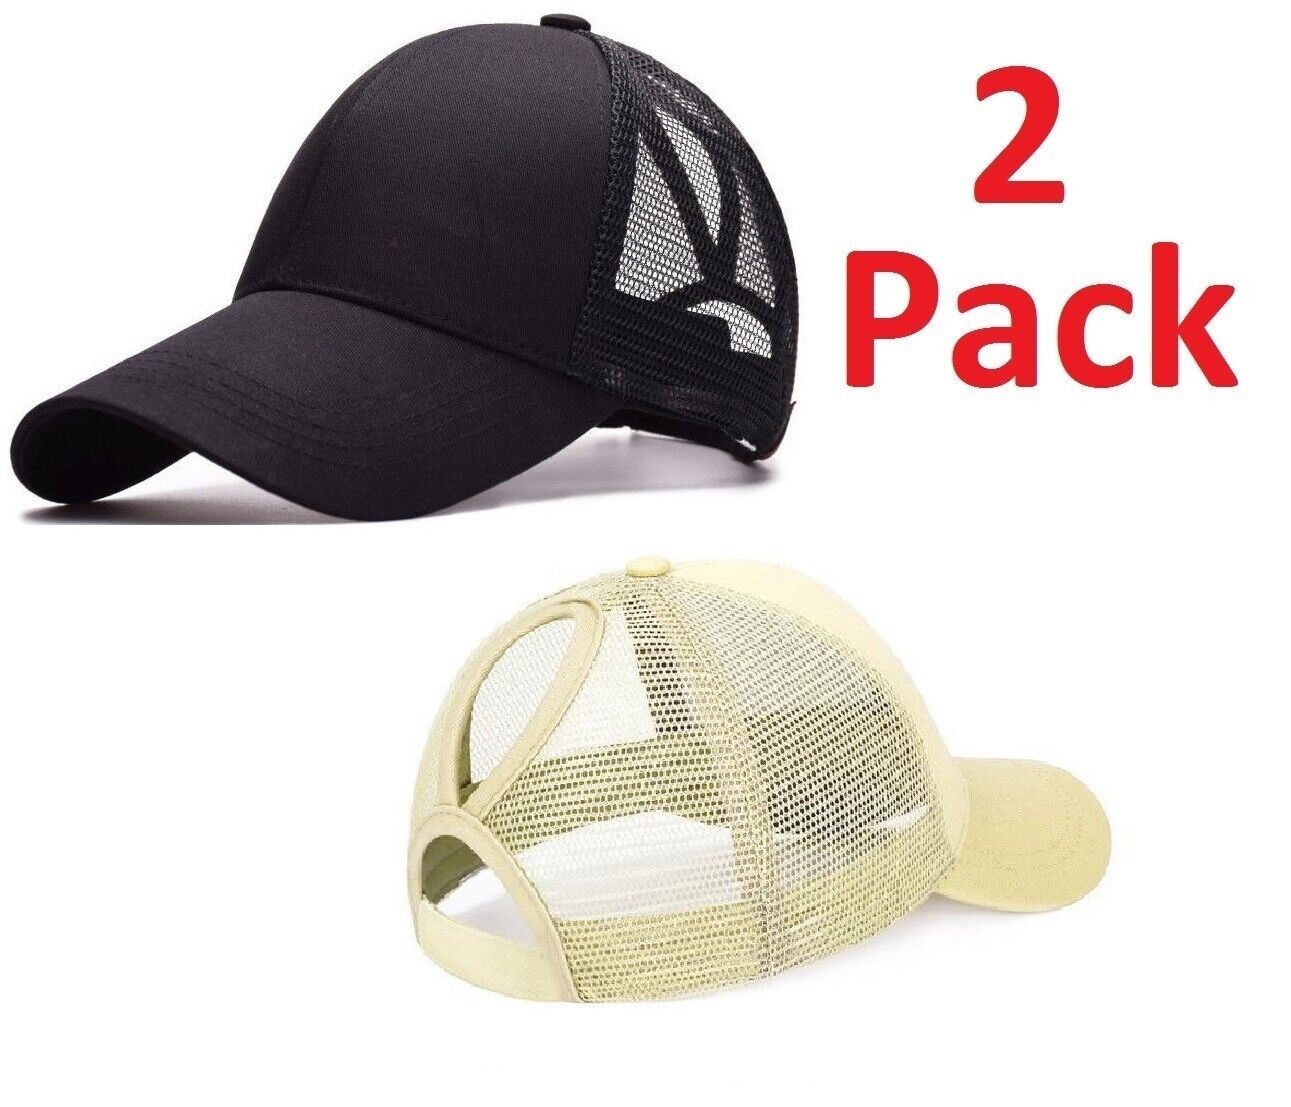 2 Pack- Ponycap Messy High Bun Ponytail Adjustable Mesh Trucker Baseball Cap Hat Clothing, Shoes & Accessories